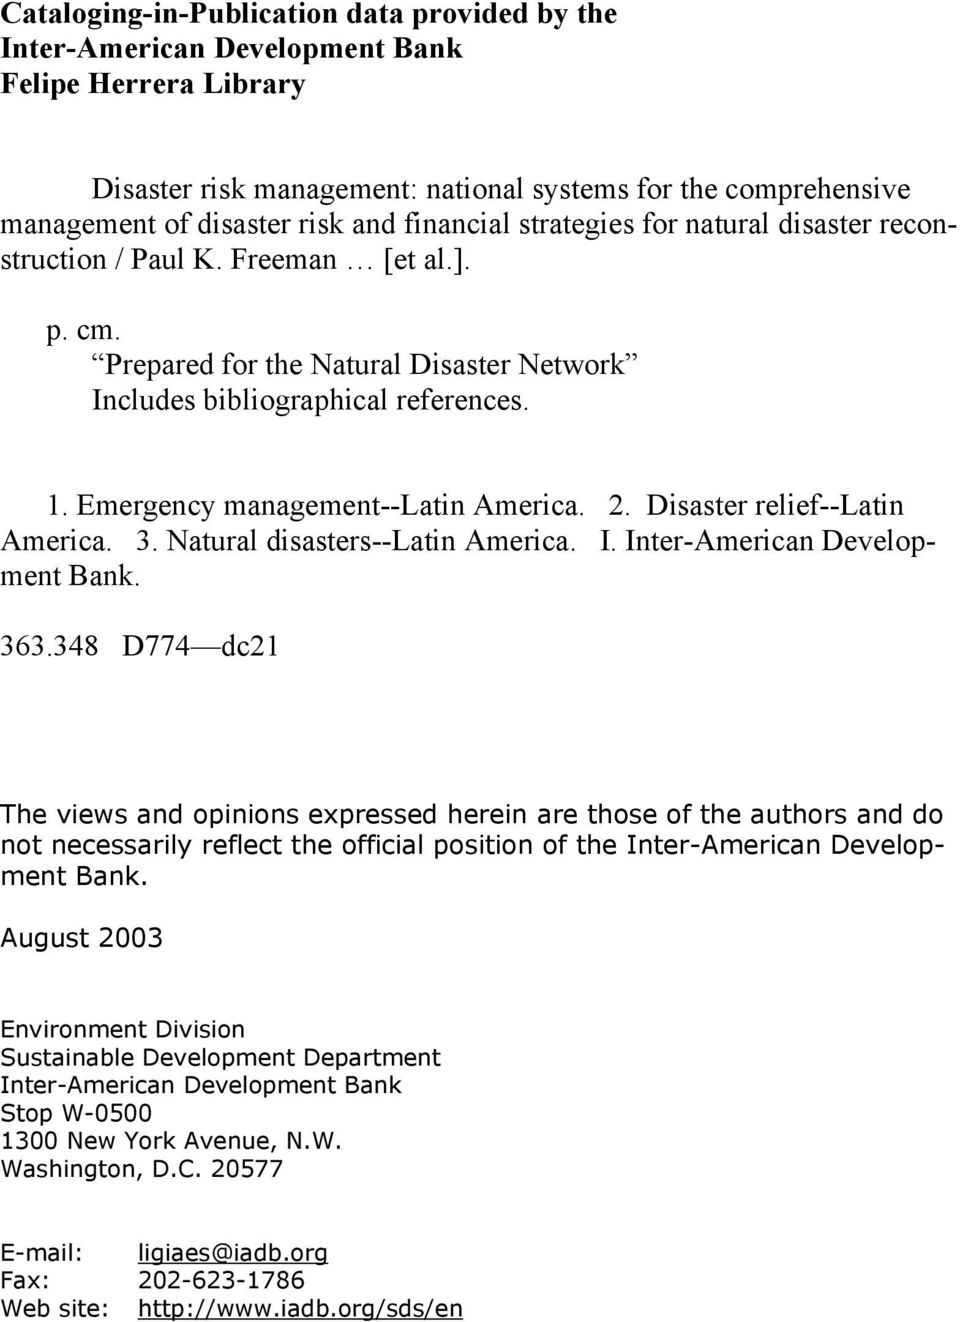 Emergency management--latin America. 2. Disaster relief--latin America. 3. Natural disasters--latin America. I. Inter-American Development Bank. 363.